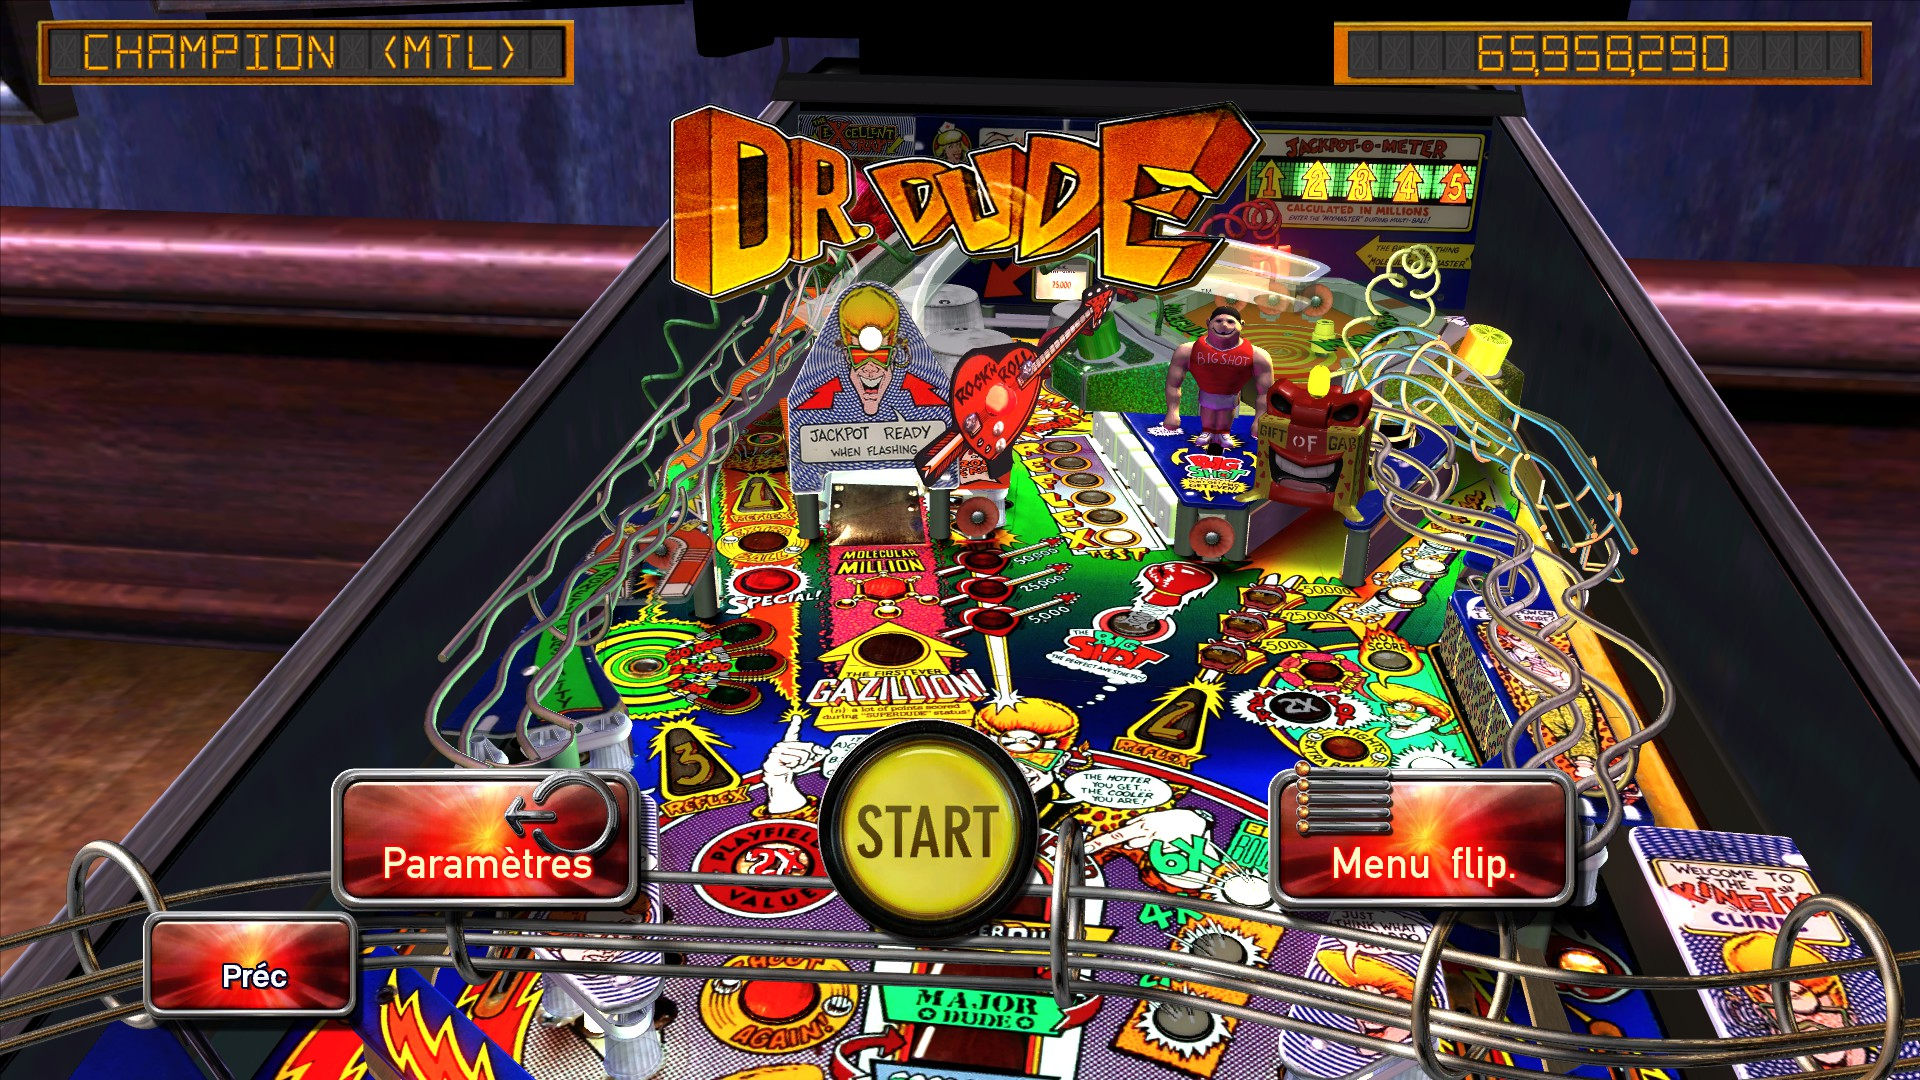 Mantalow: Pinball Arcade: Dr. Dude (PC) 65,958,290 points on 2015-10-08 04:19:22